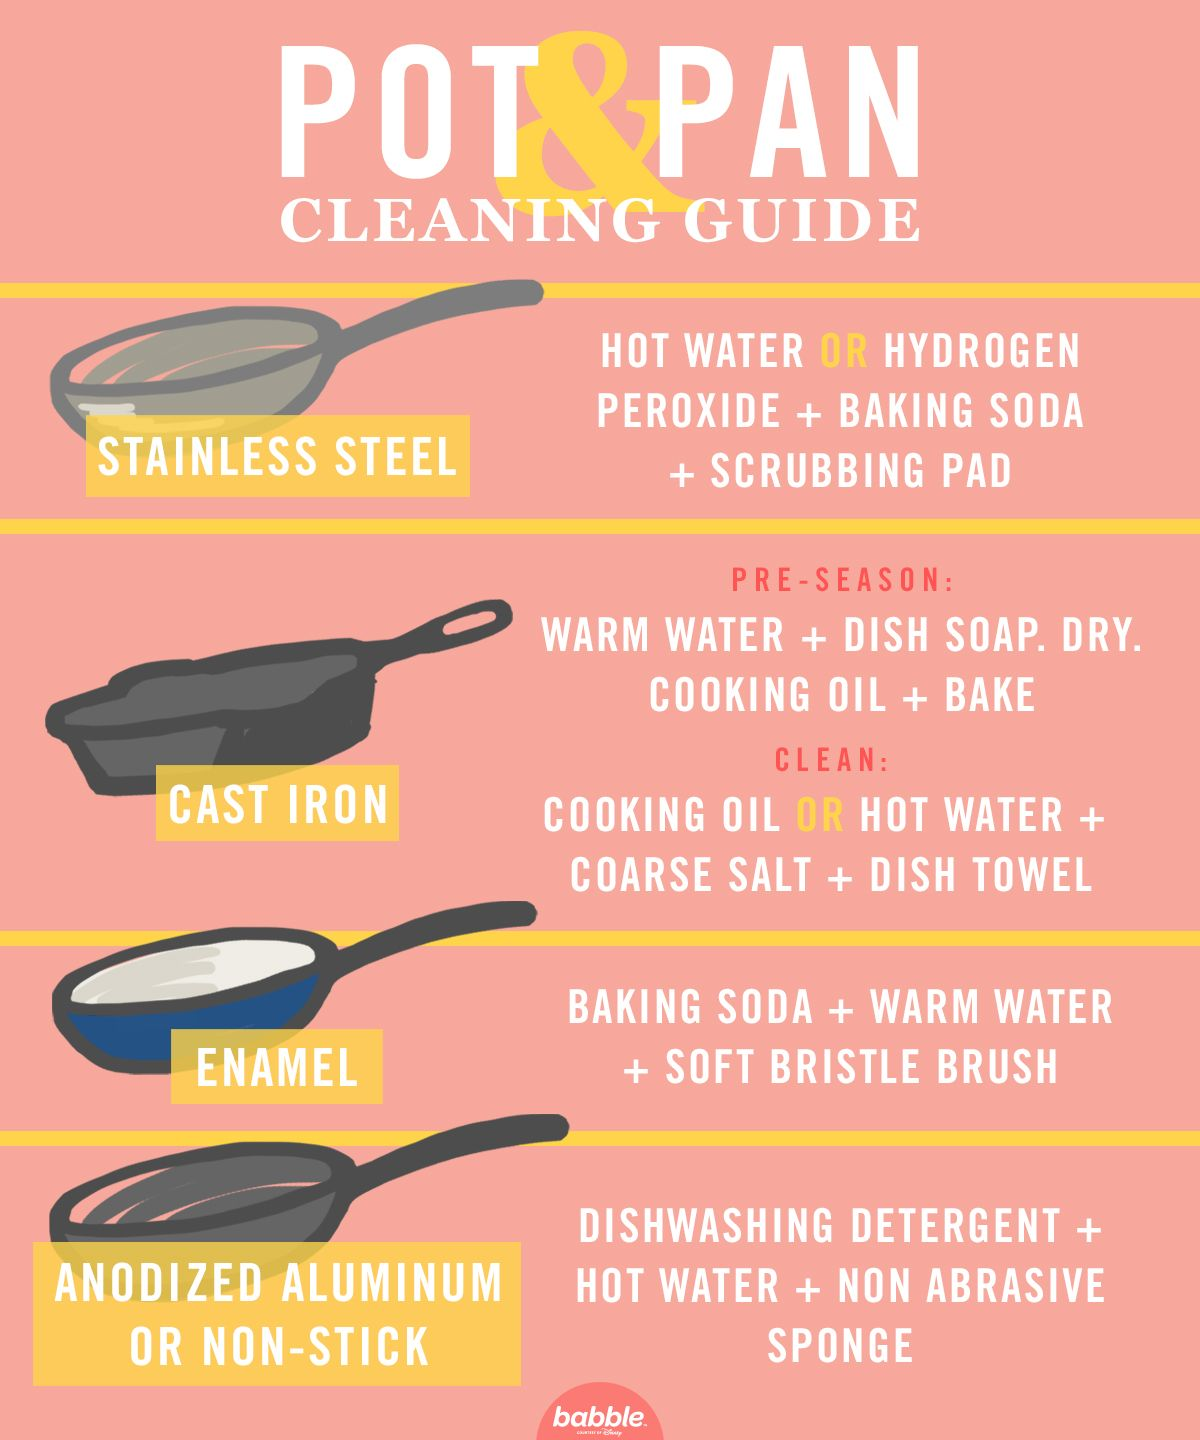 7 Hacks For Cleaning Every Type Of Pot And Pan In Your